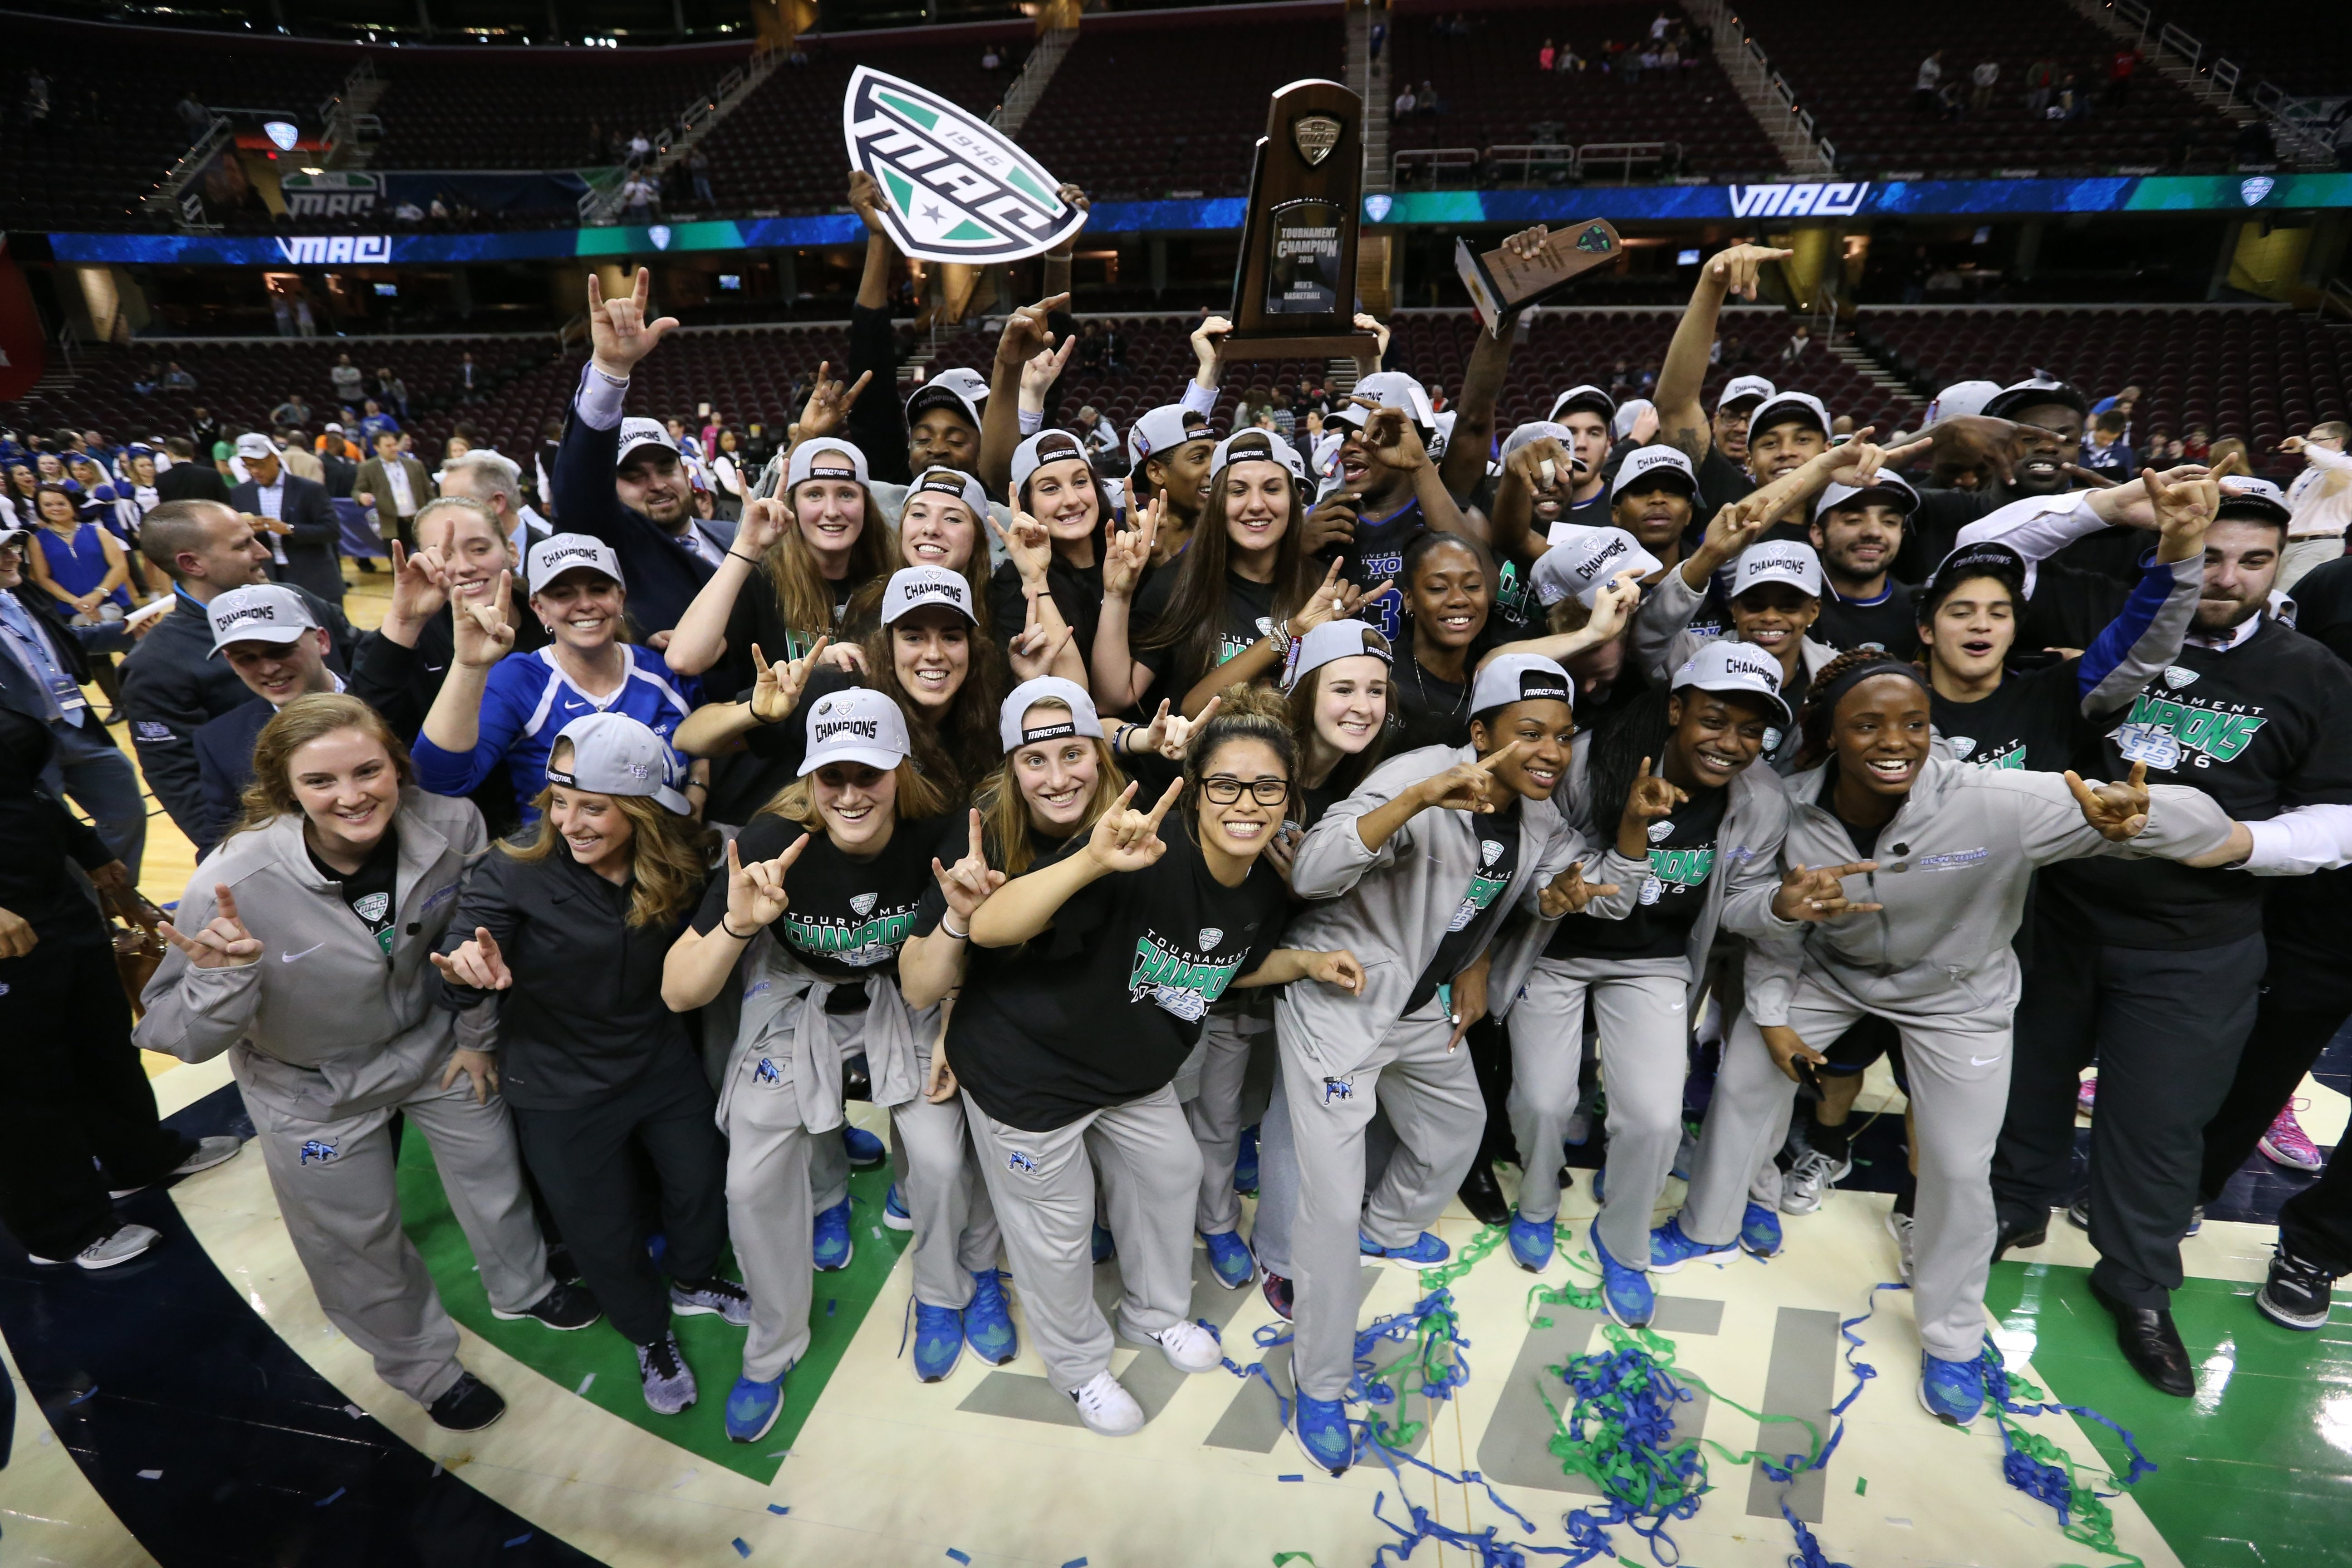 University at Buffalo men's and women's teams get together for a group picture after each won a MAC basketball championship in dramatic style Saturday in Cleveland.